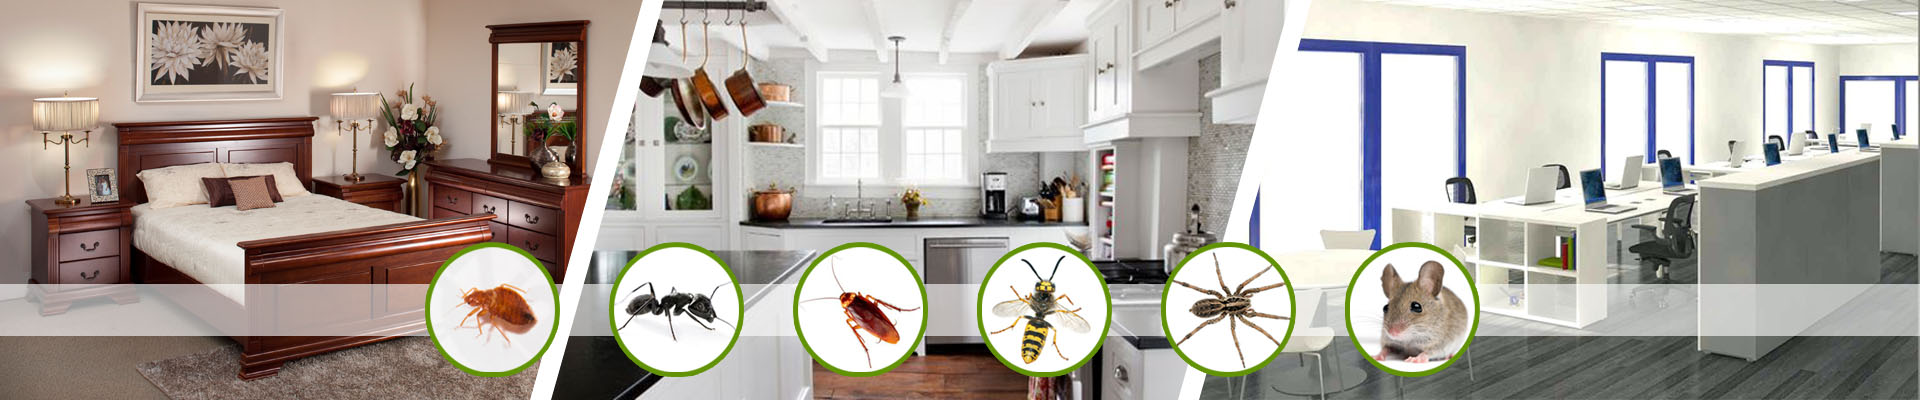 collection-of-pest-desert-pest-control